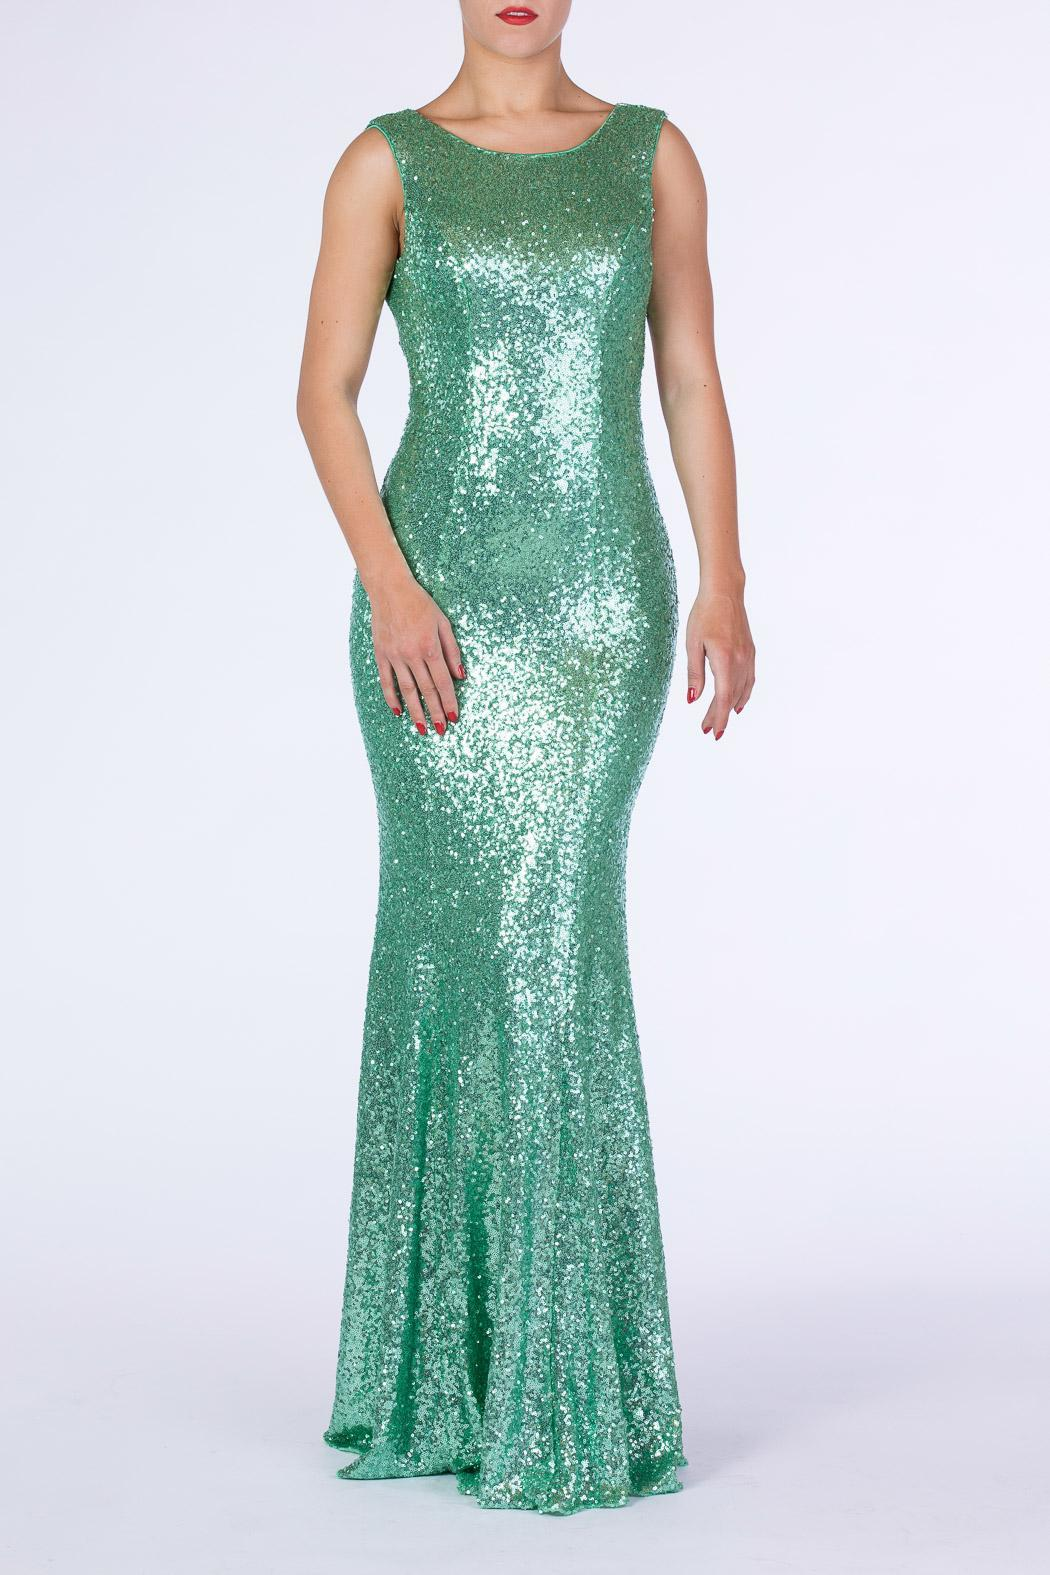 Jadore Sequin Prom Gown from Canada by Via Monte Milano Boutique ...